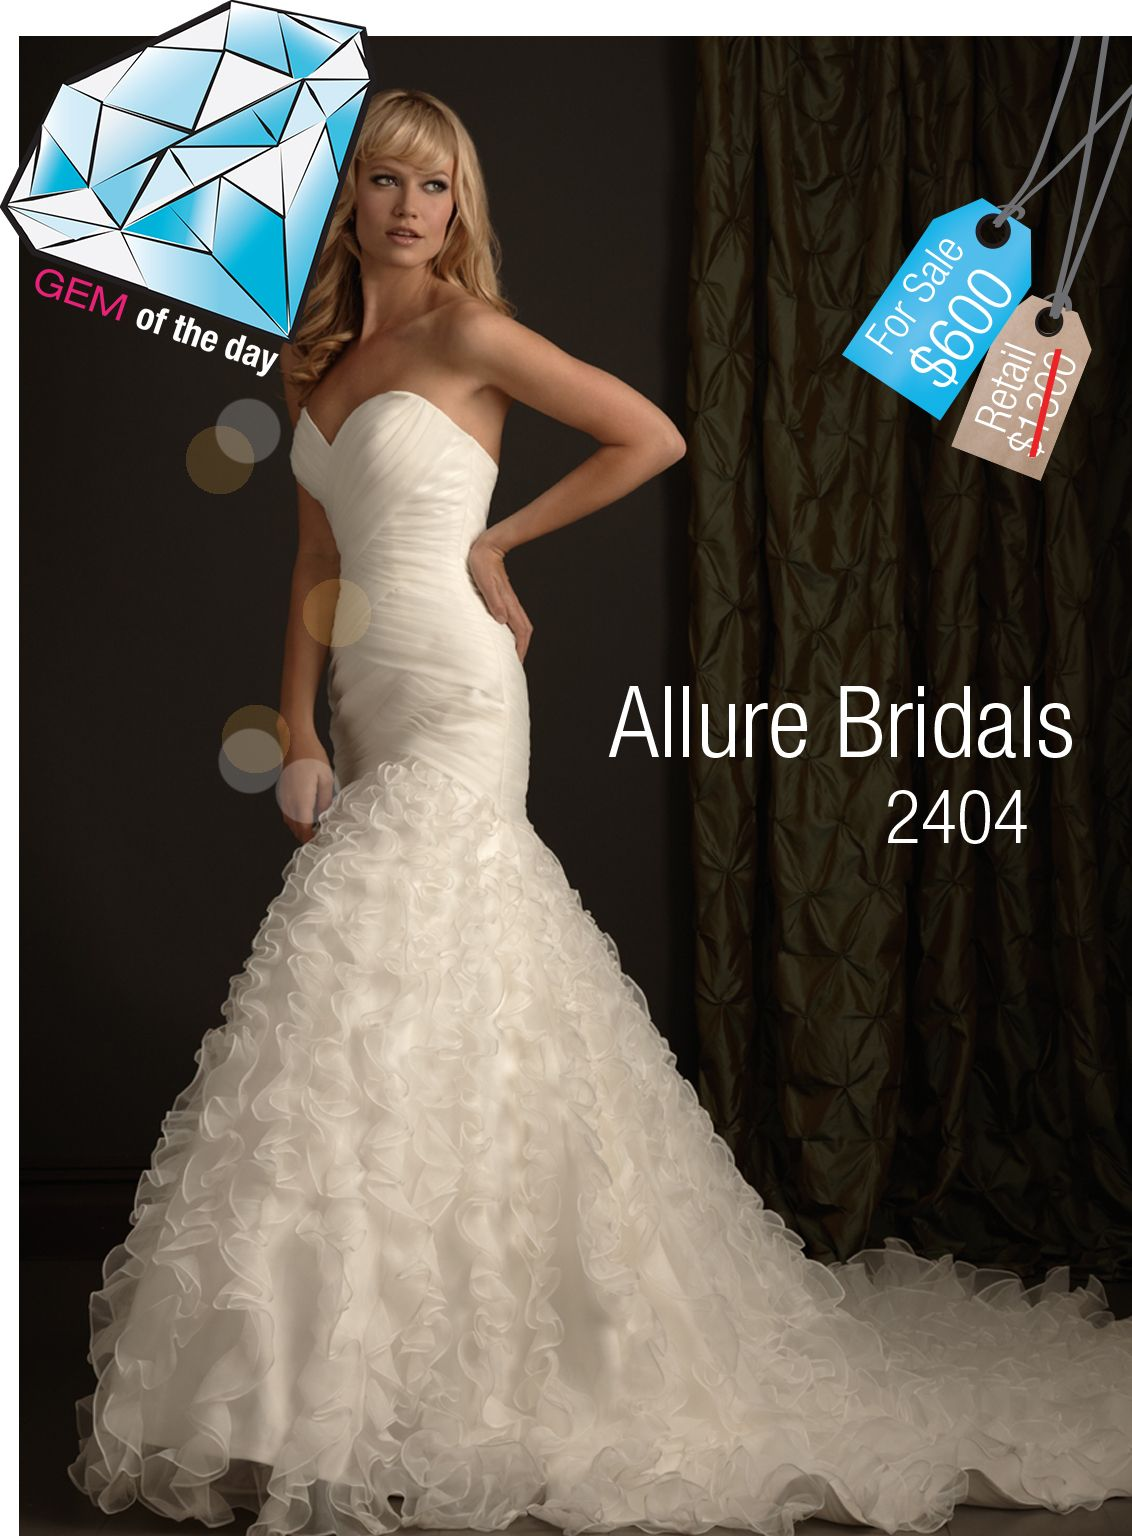 Gem of the Day - Allure Bridals Used Wedding Gown - $700 Off ($600 ...